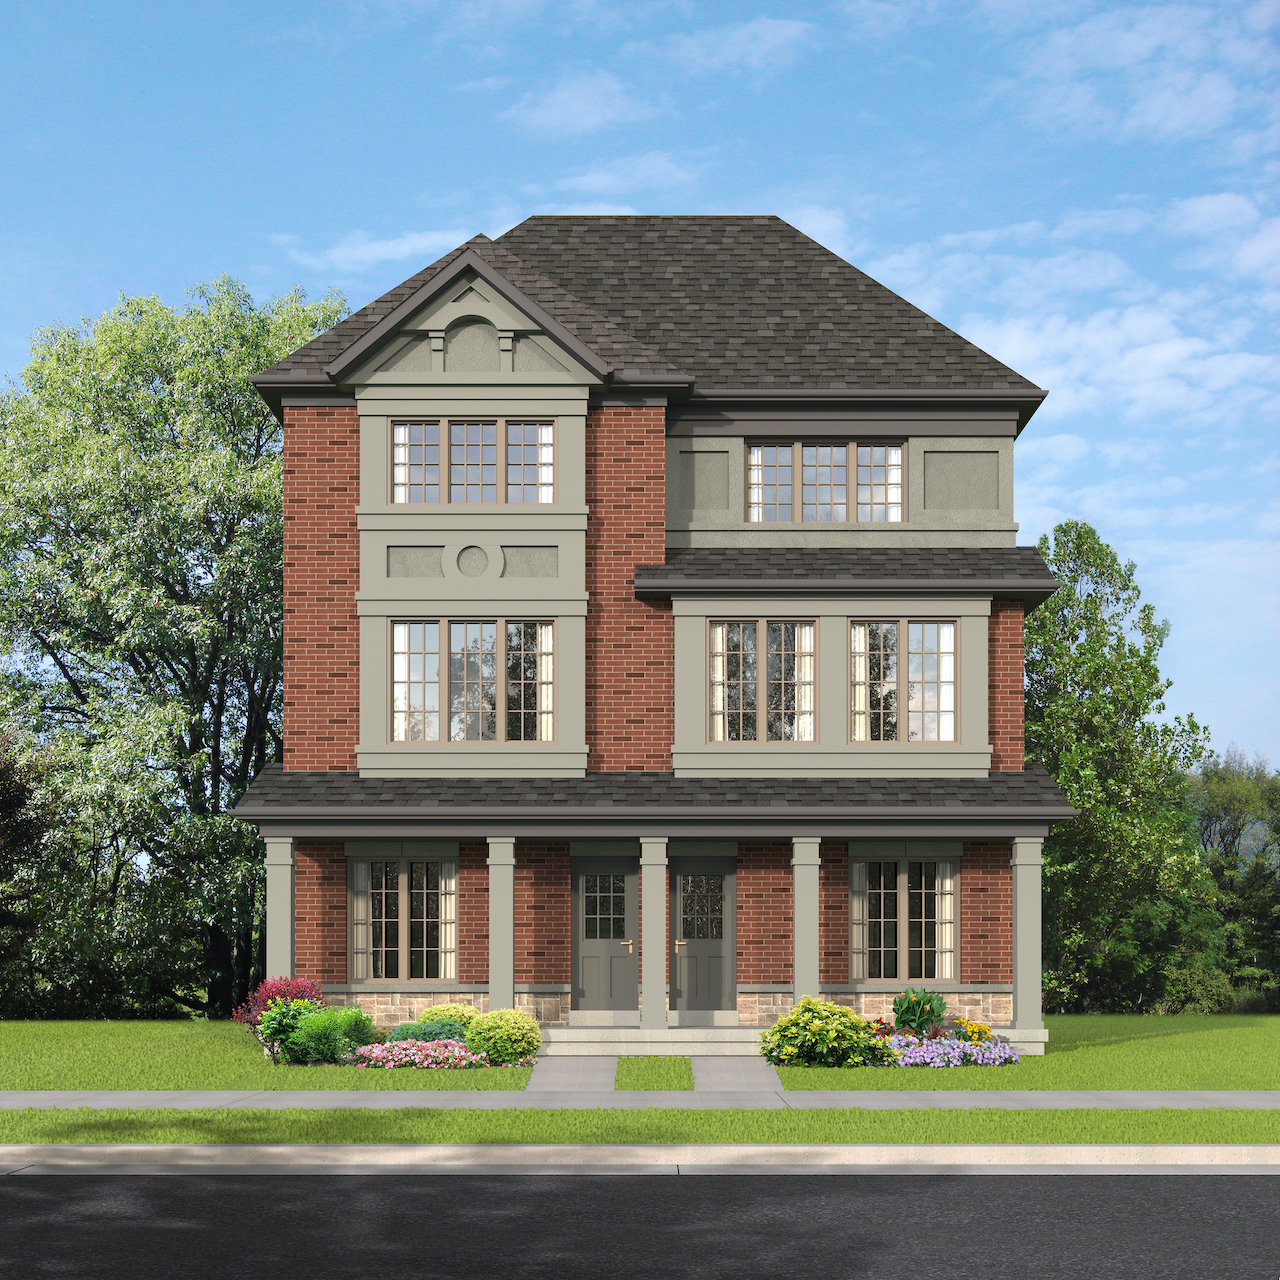 Exterior rendering of The Village at Highland Creek Semis 15-16